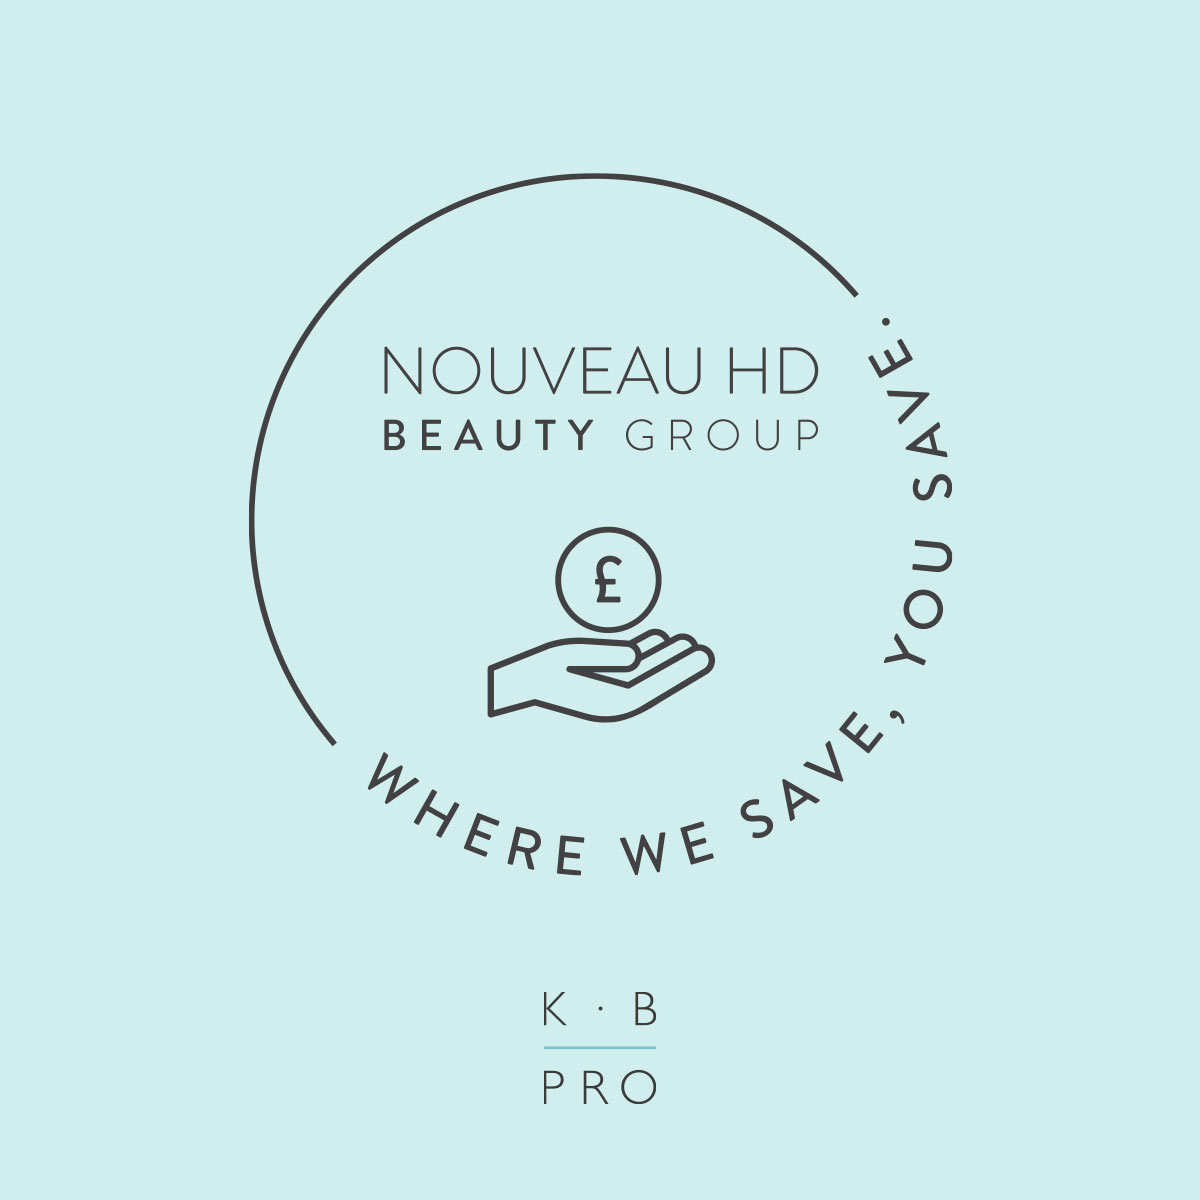 Where we save you save stamp Nouveau HD Beauty Group